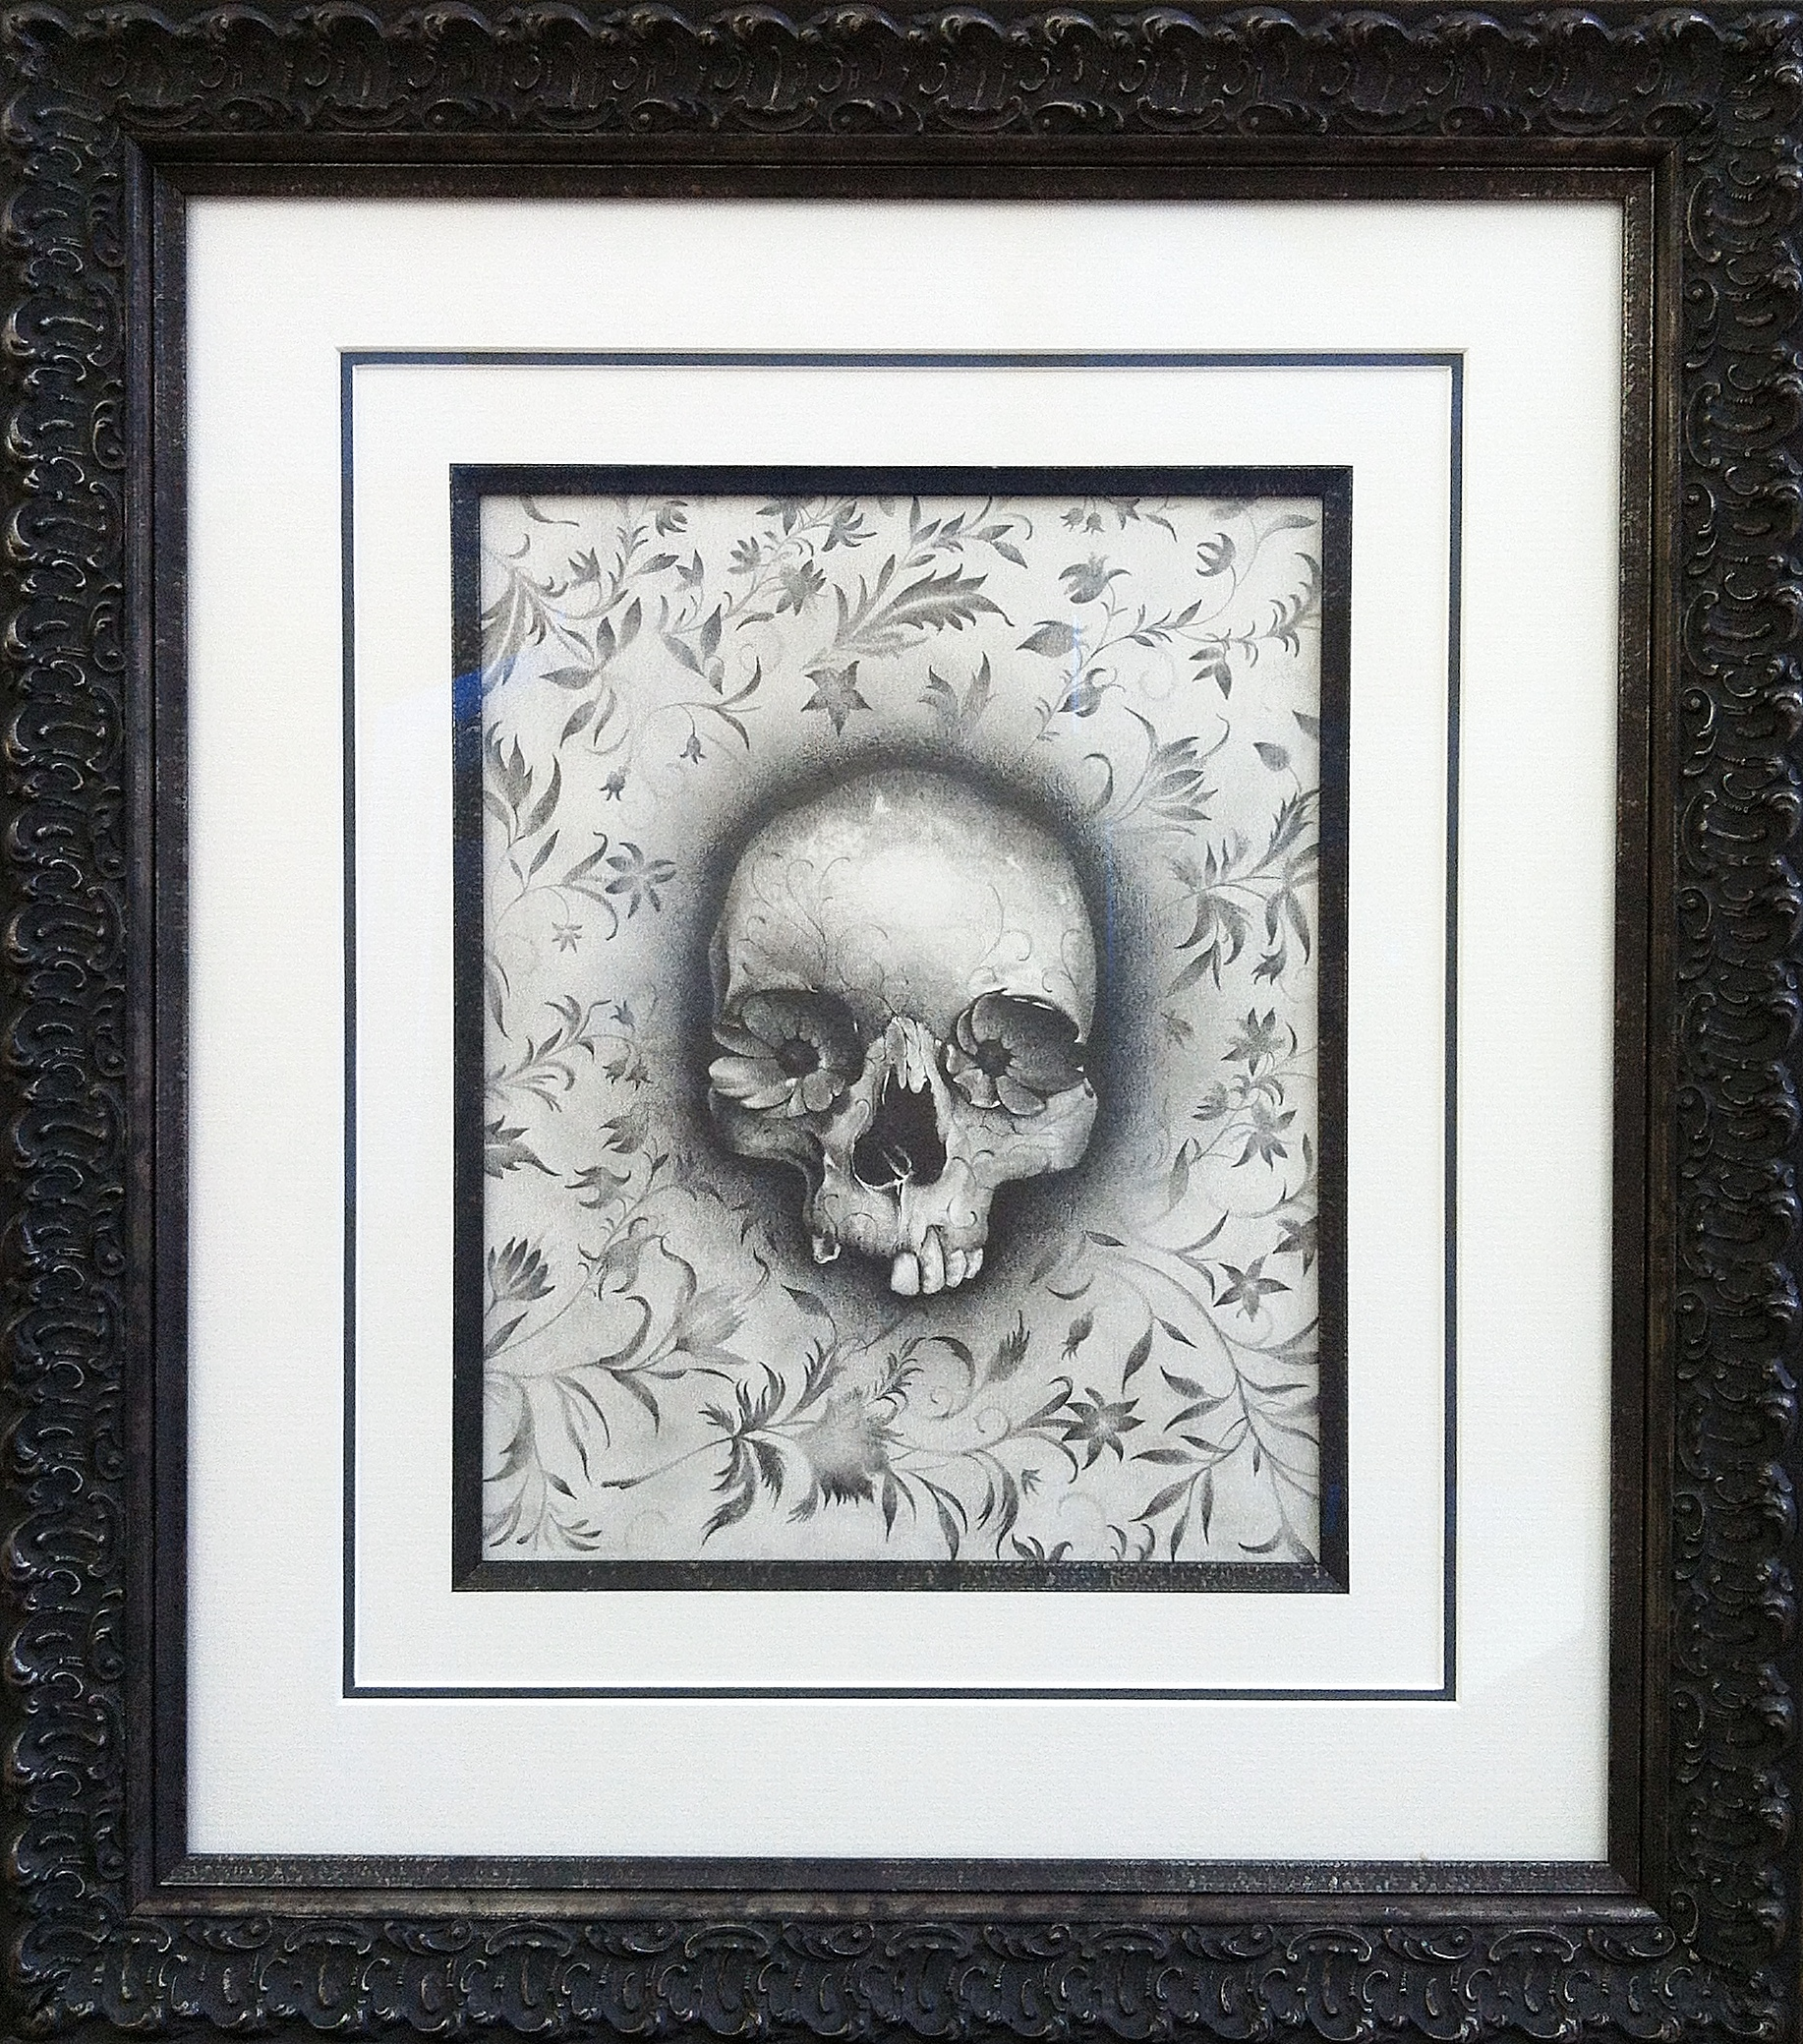 Floral Skull, pencil and paper